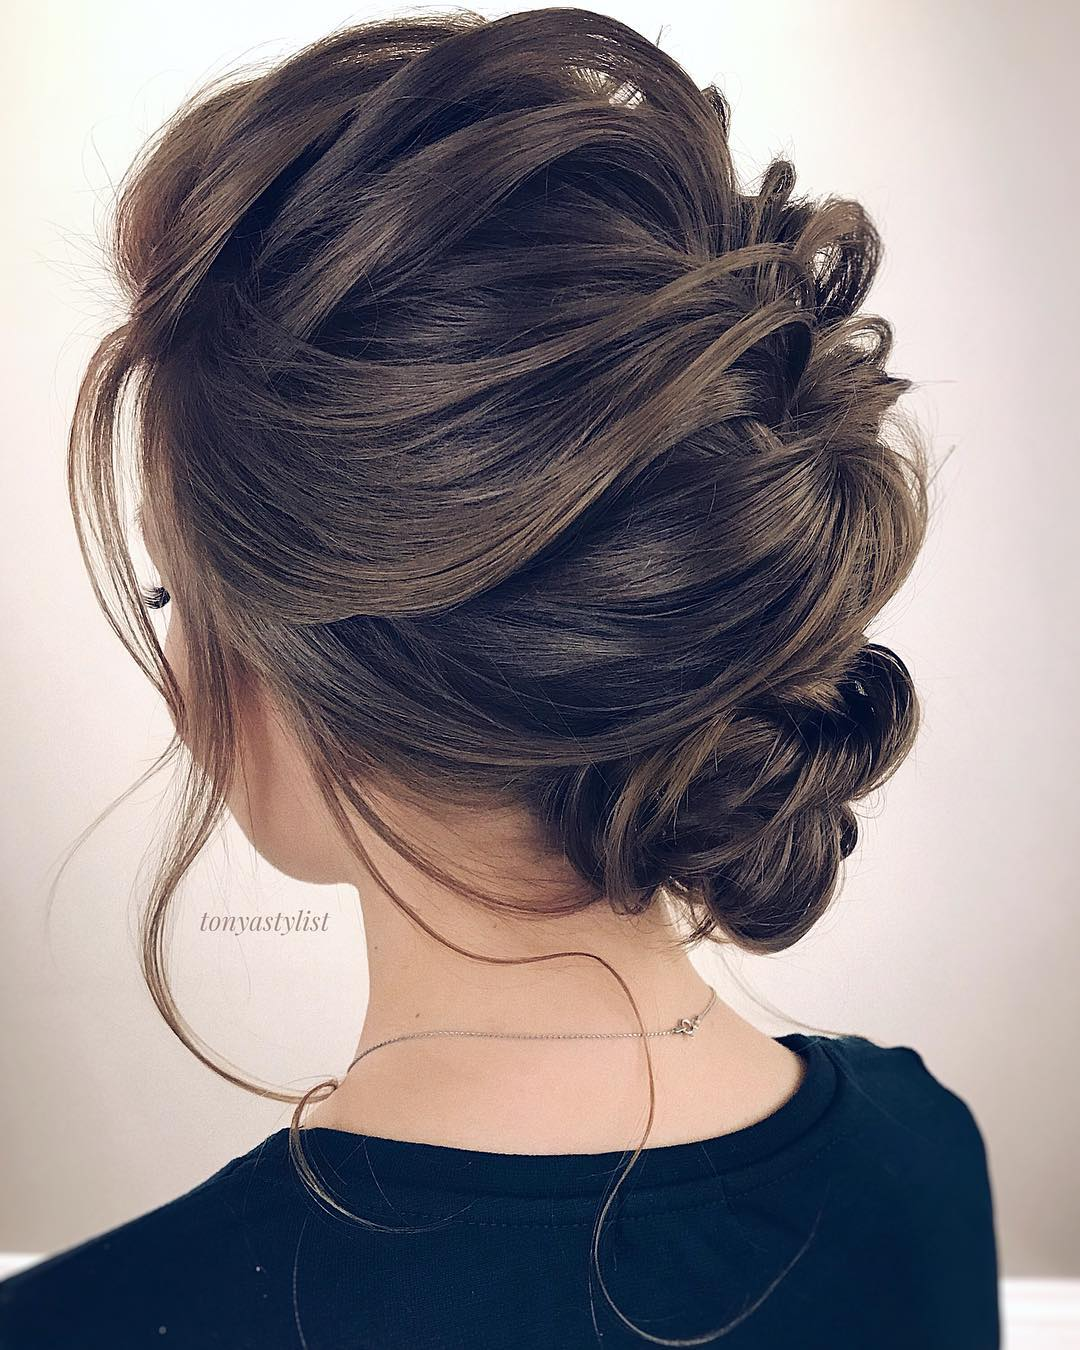 10 Updos for Medium Length Hair - Prom & Homecoming ...